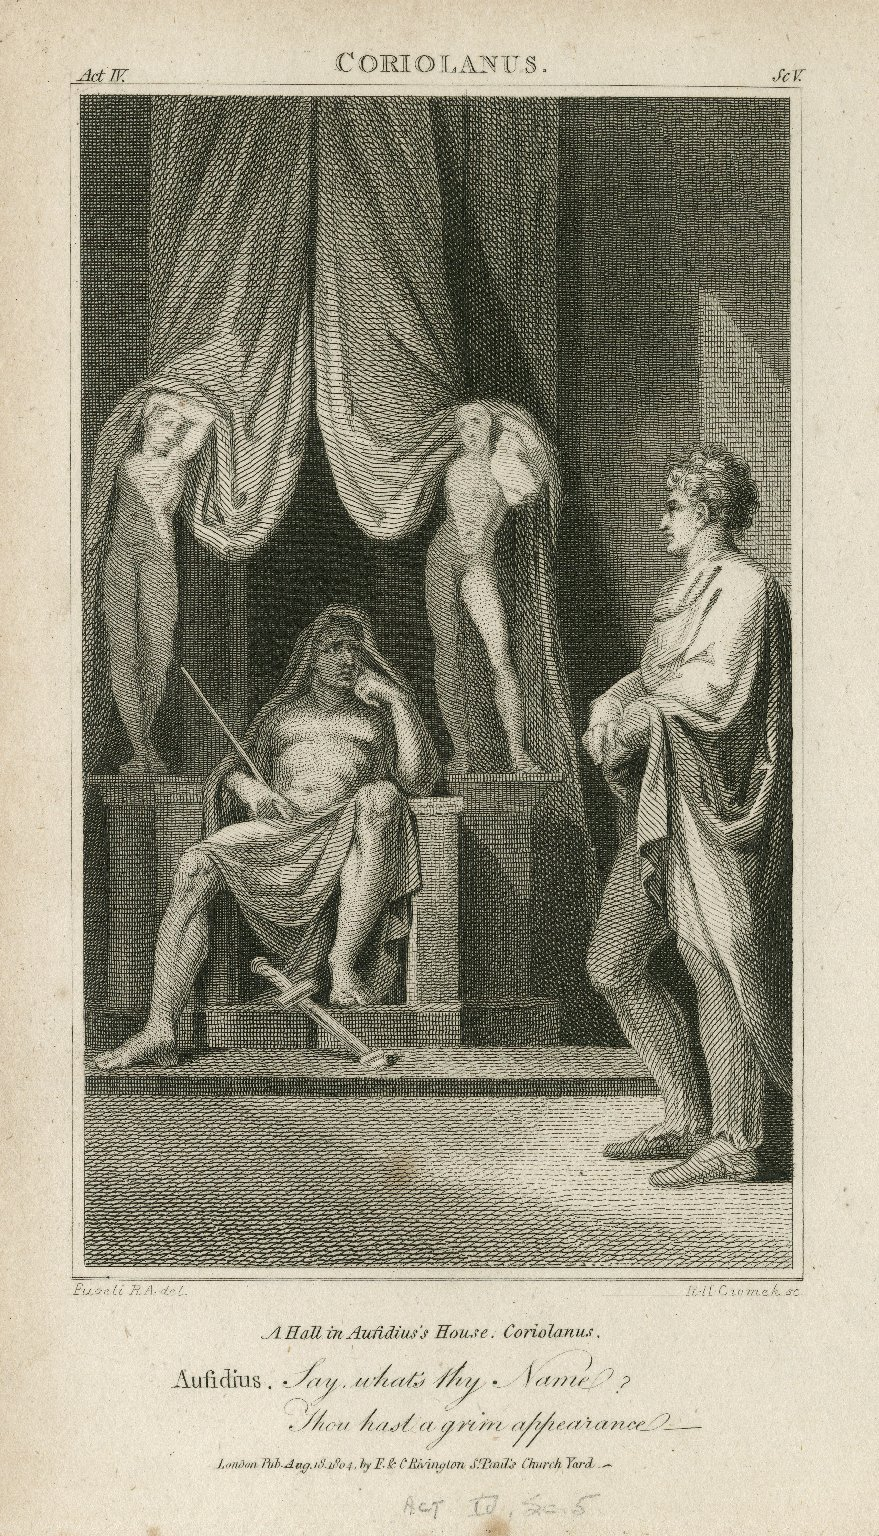 Coriolanus, act IV, sc v, a hall in Aufidius's house ... Say, what's thy name? Thou hast a grim appearance [graphic] / [Henry] Fuseli R.A., del. ; R.H. Cromek, sc.